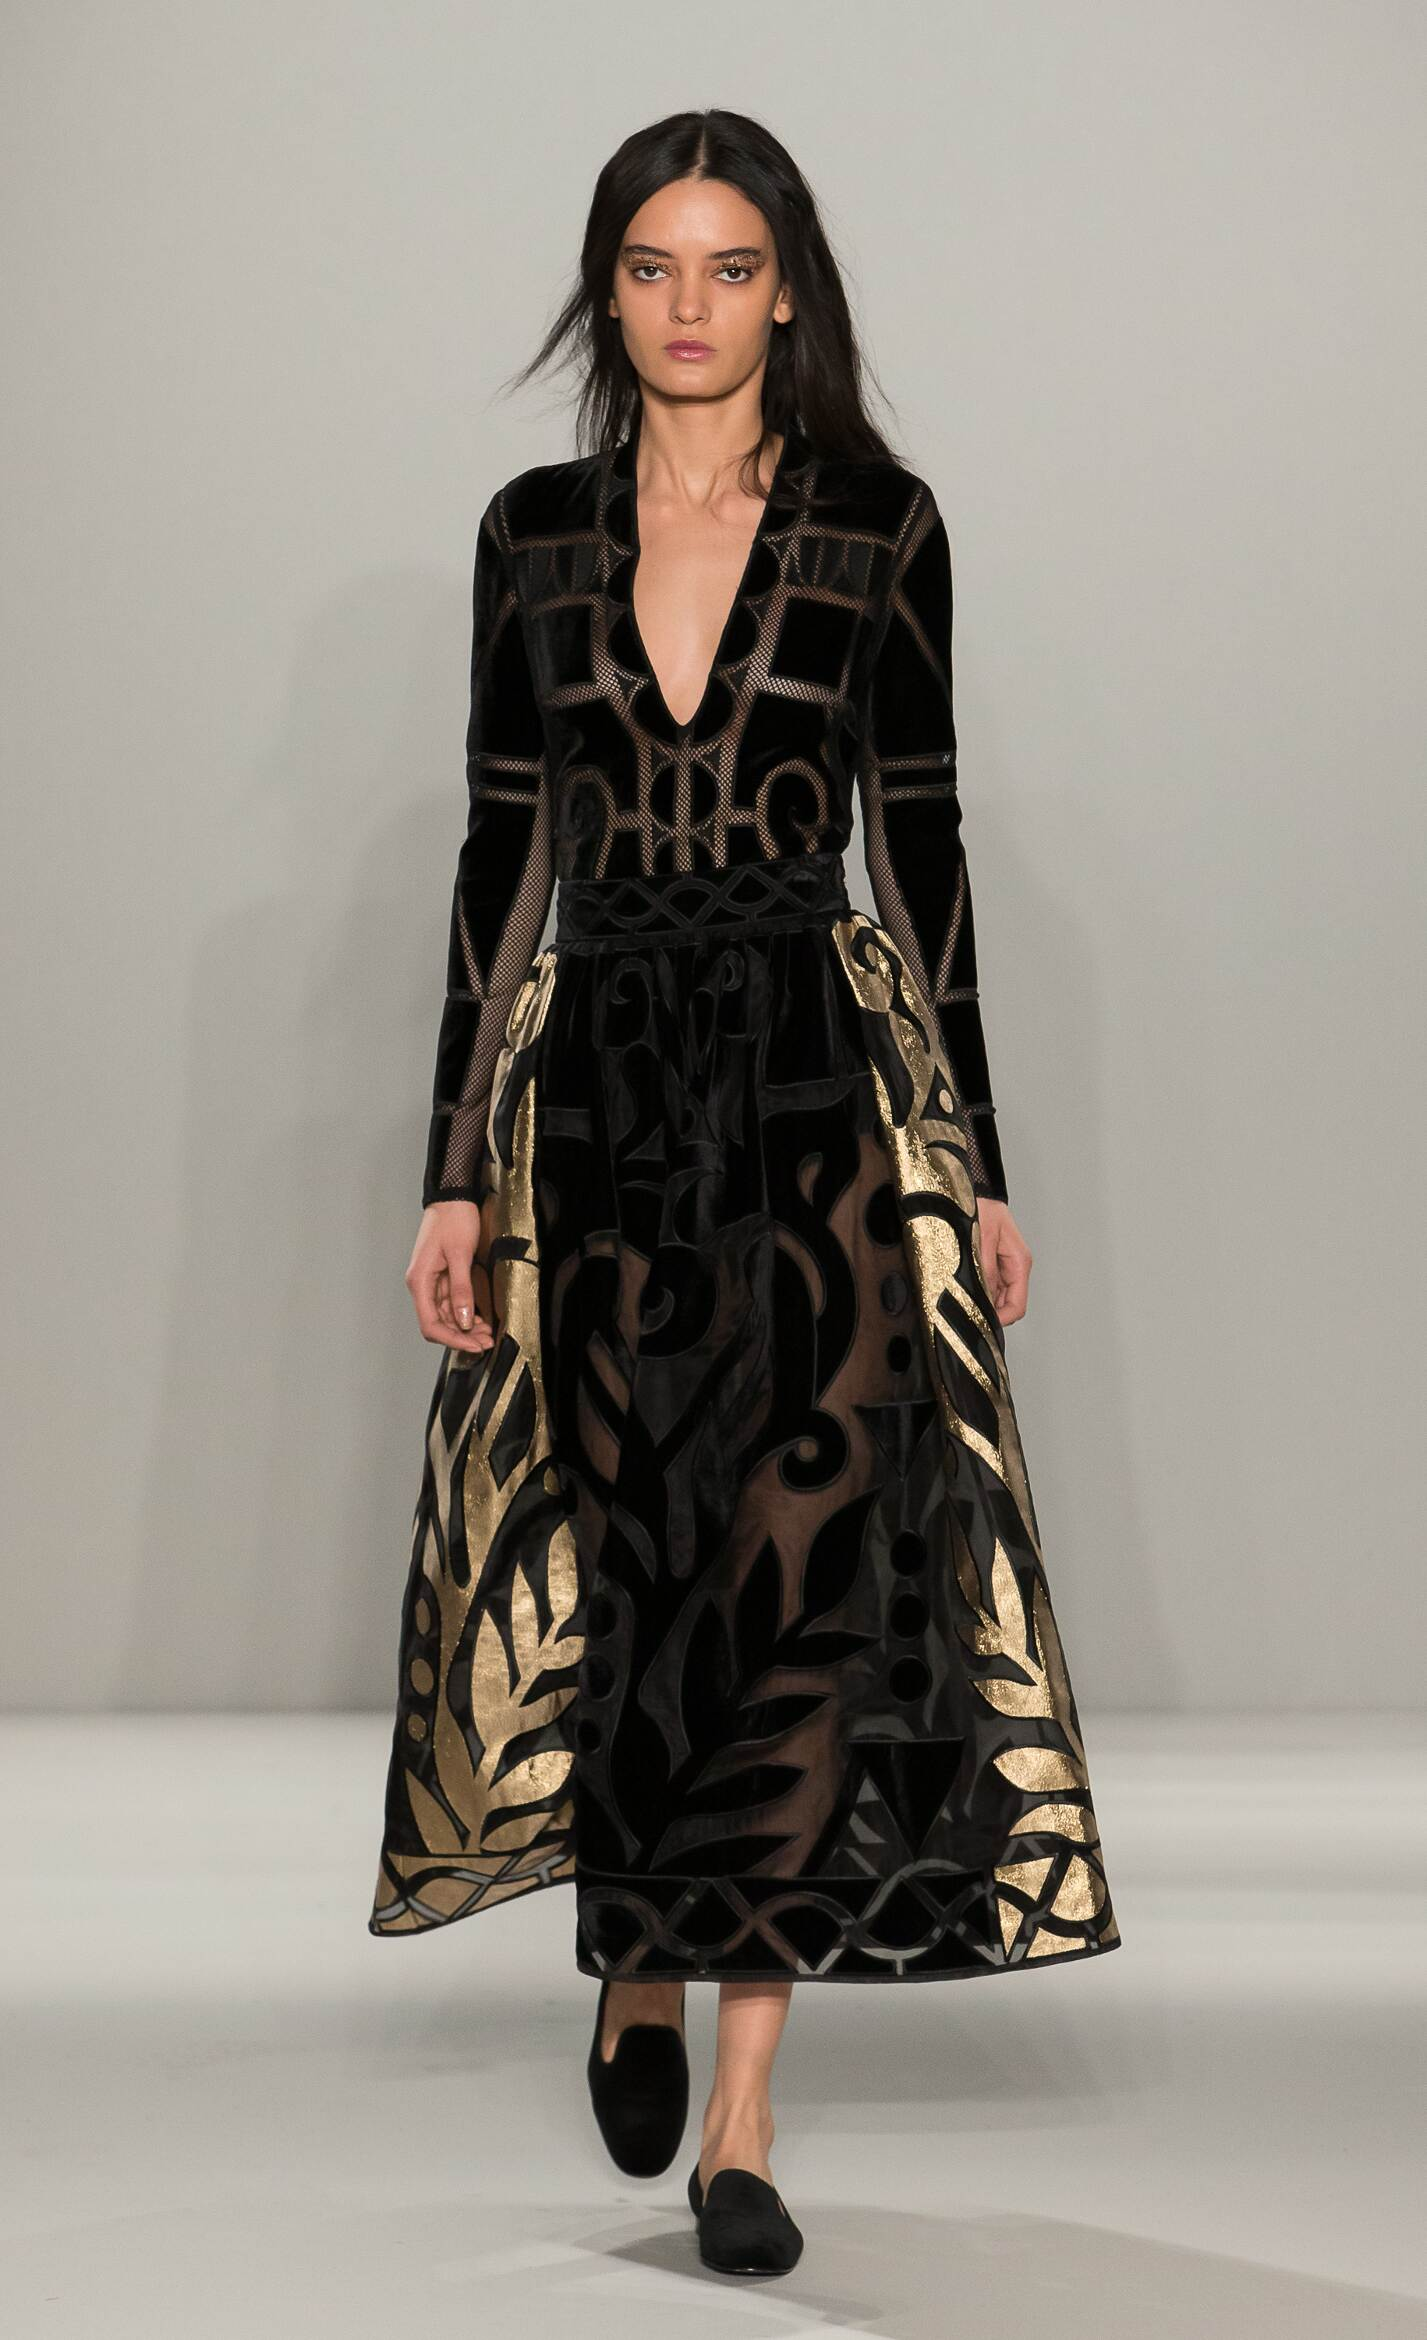 Temperley London Fall Winter 2015 16 Women S Collection